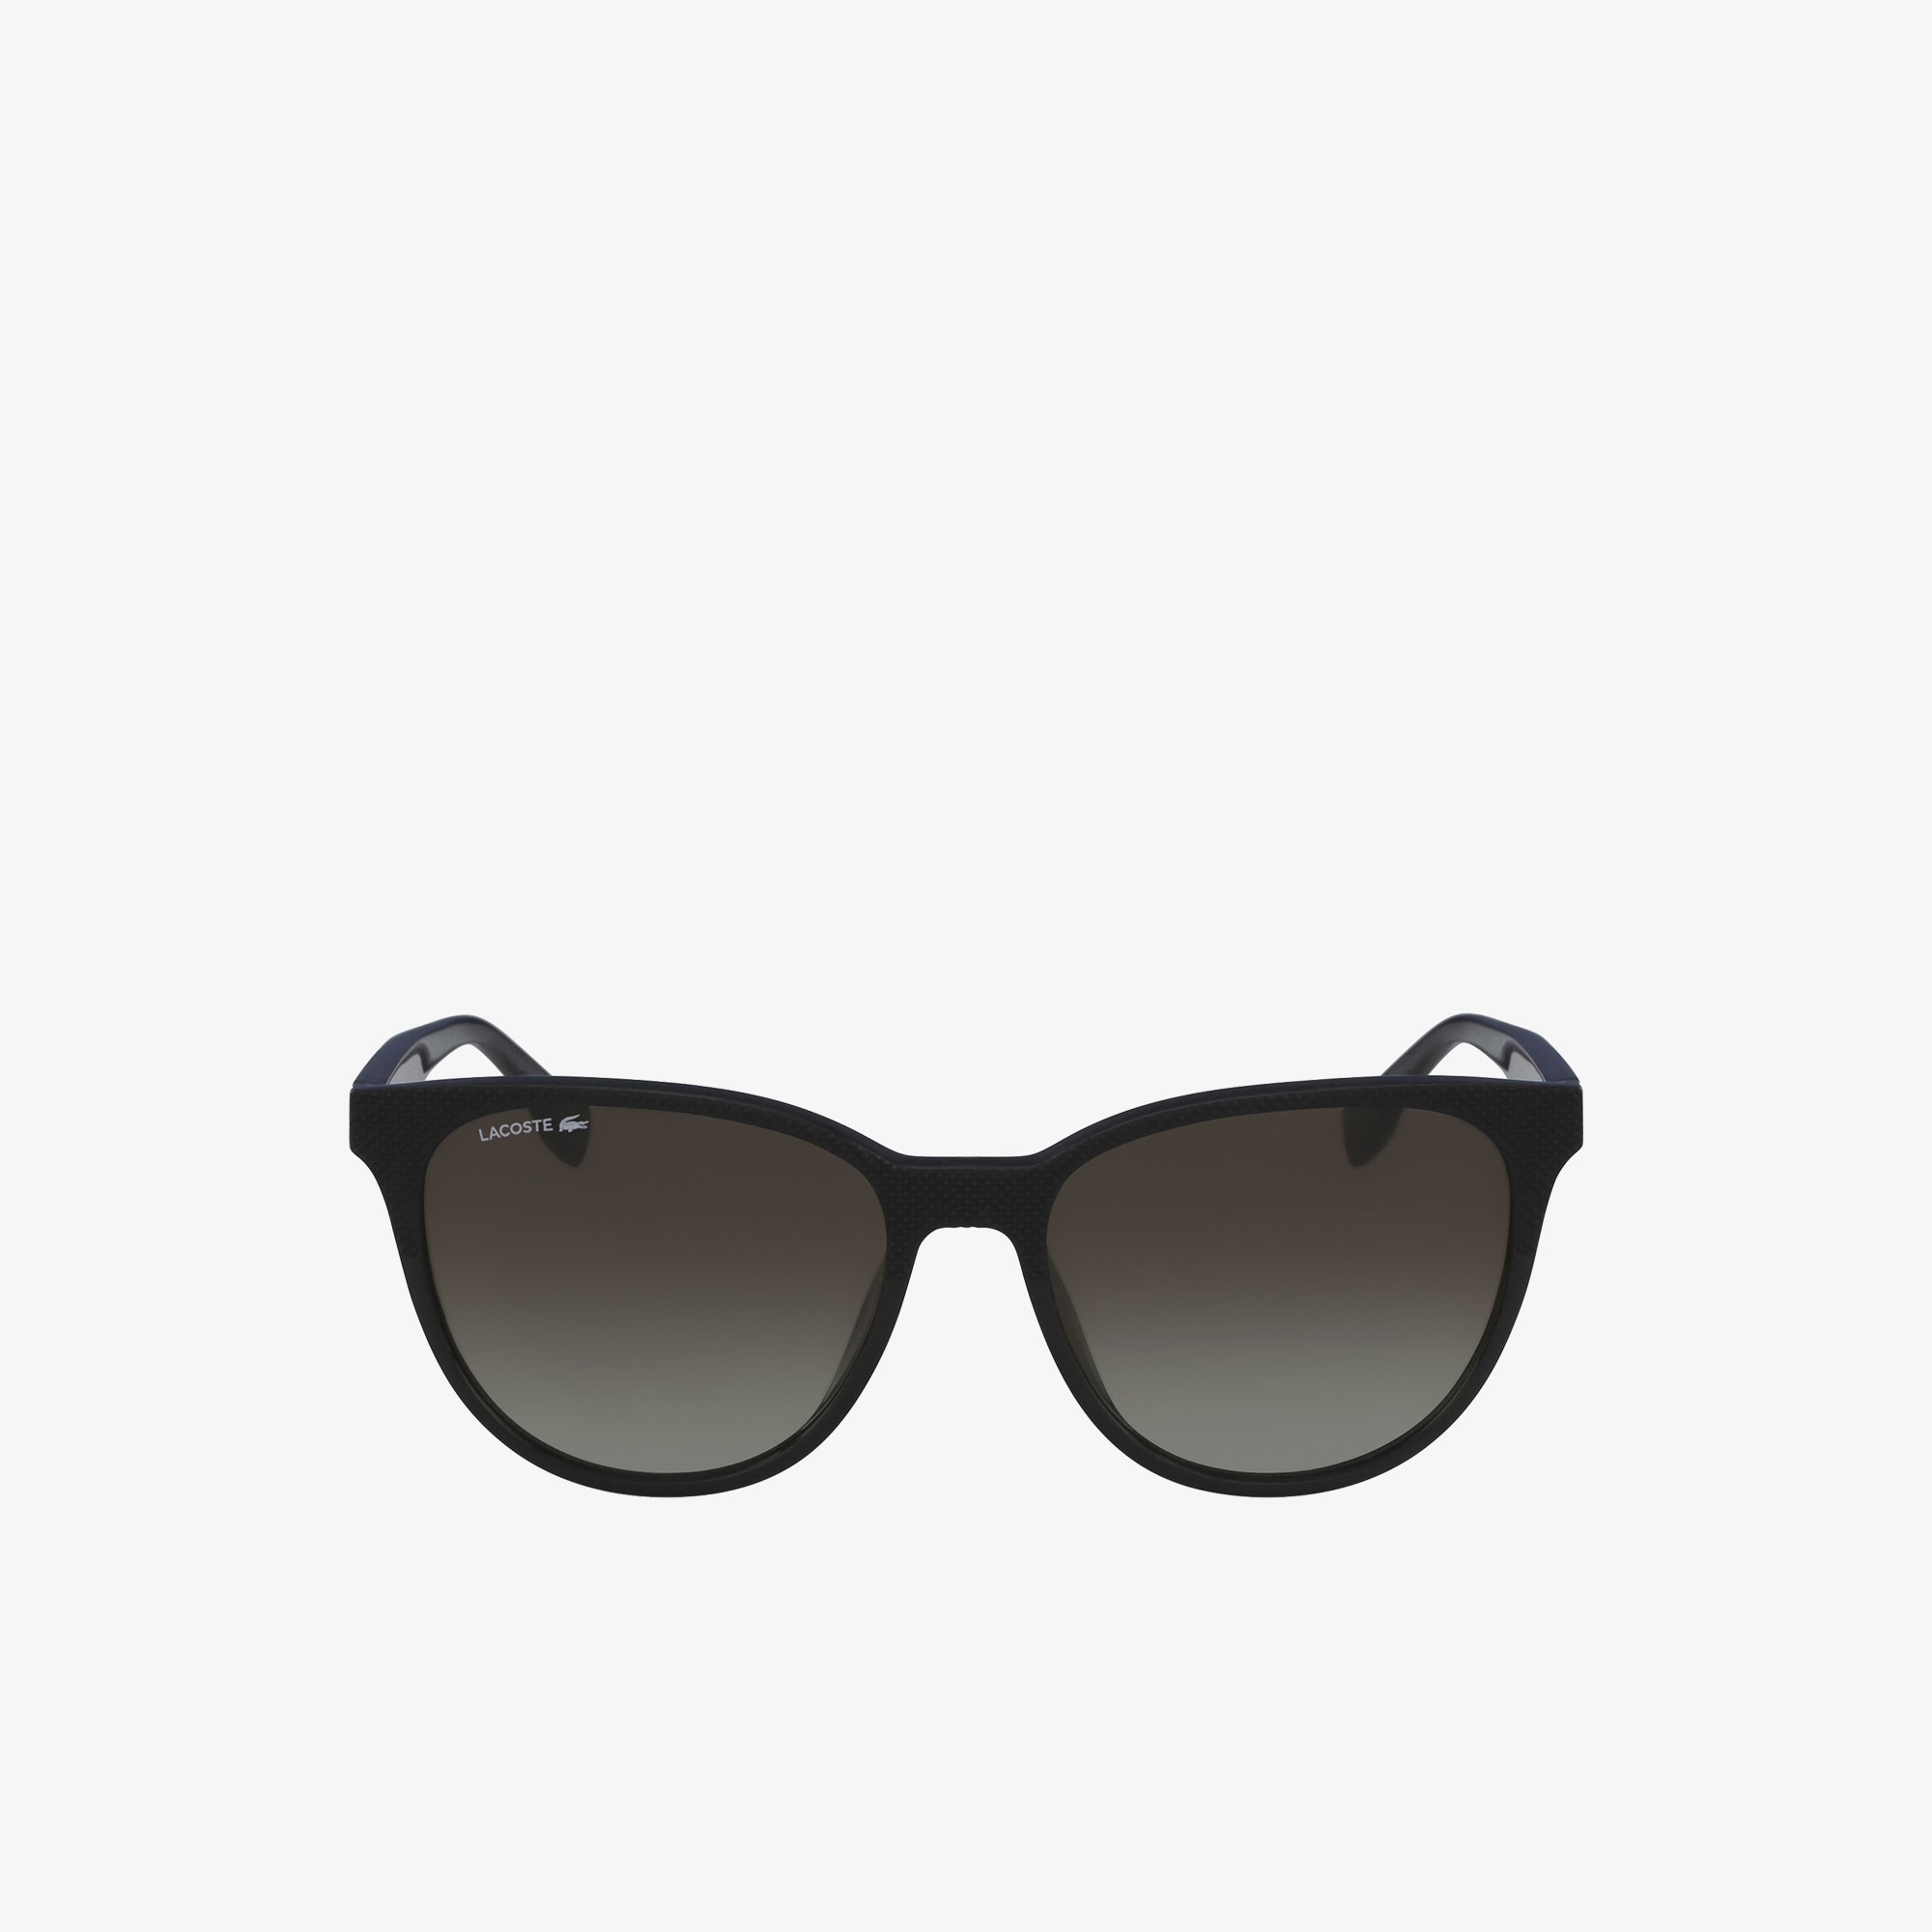 Women's Plastic Cateye L.12.12 Sunglasses